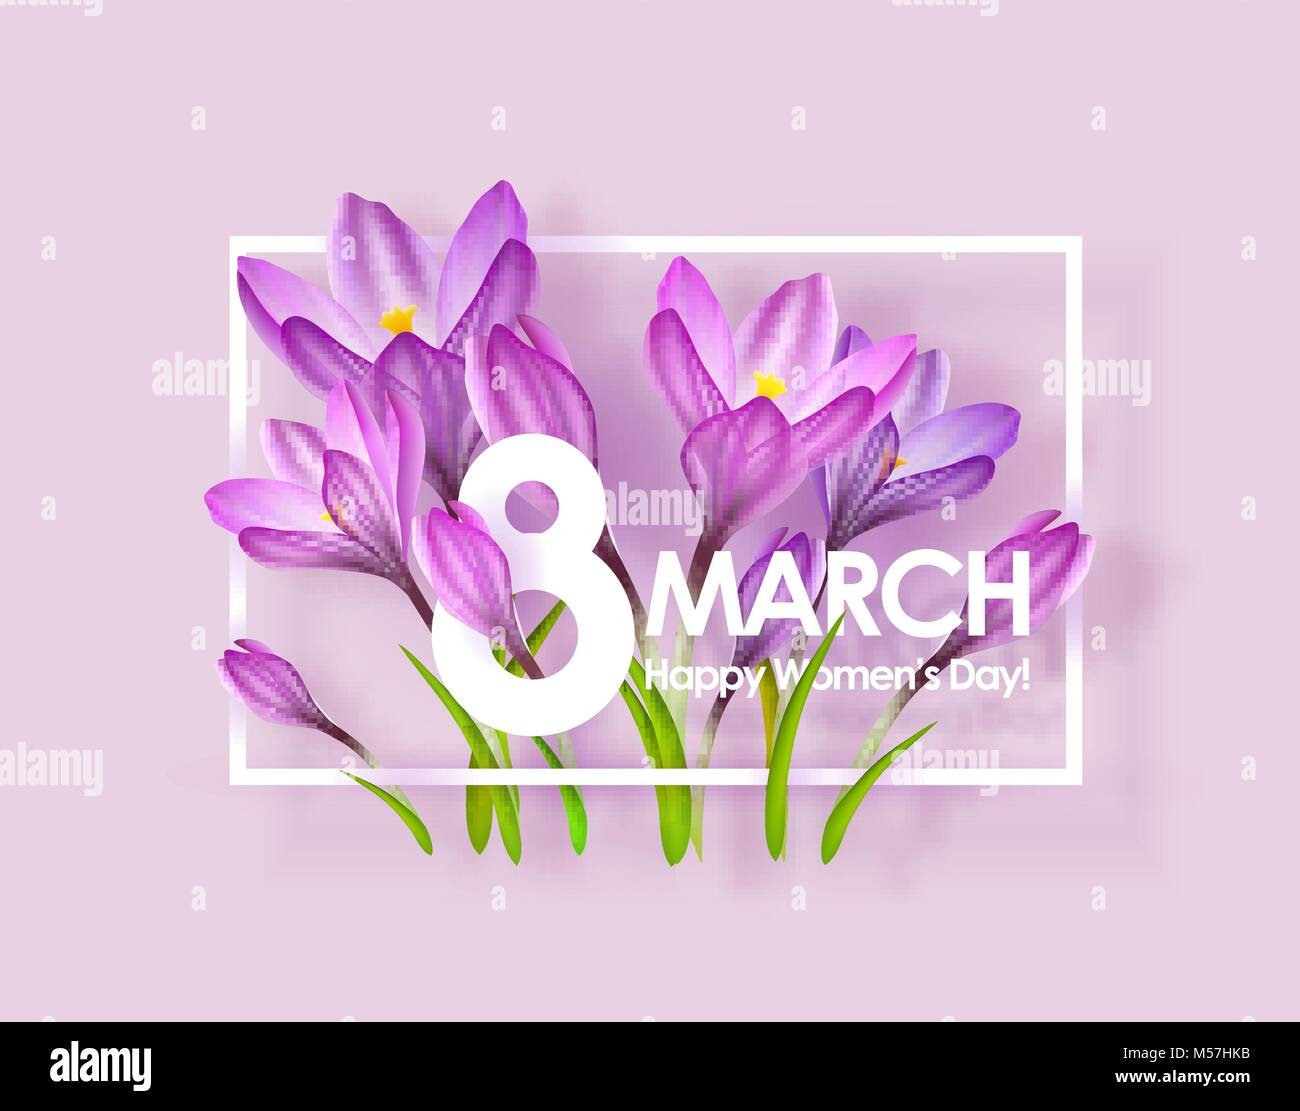 Happy Womens Day Greeting Card Stock Vector Art Illustration